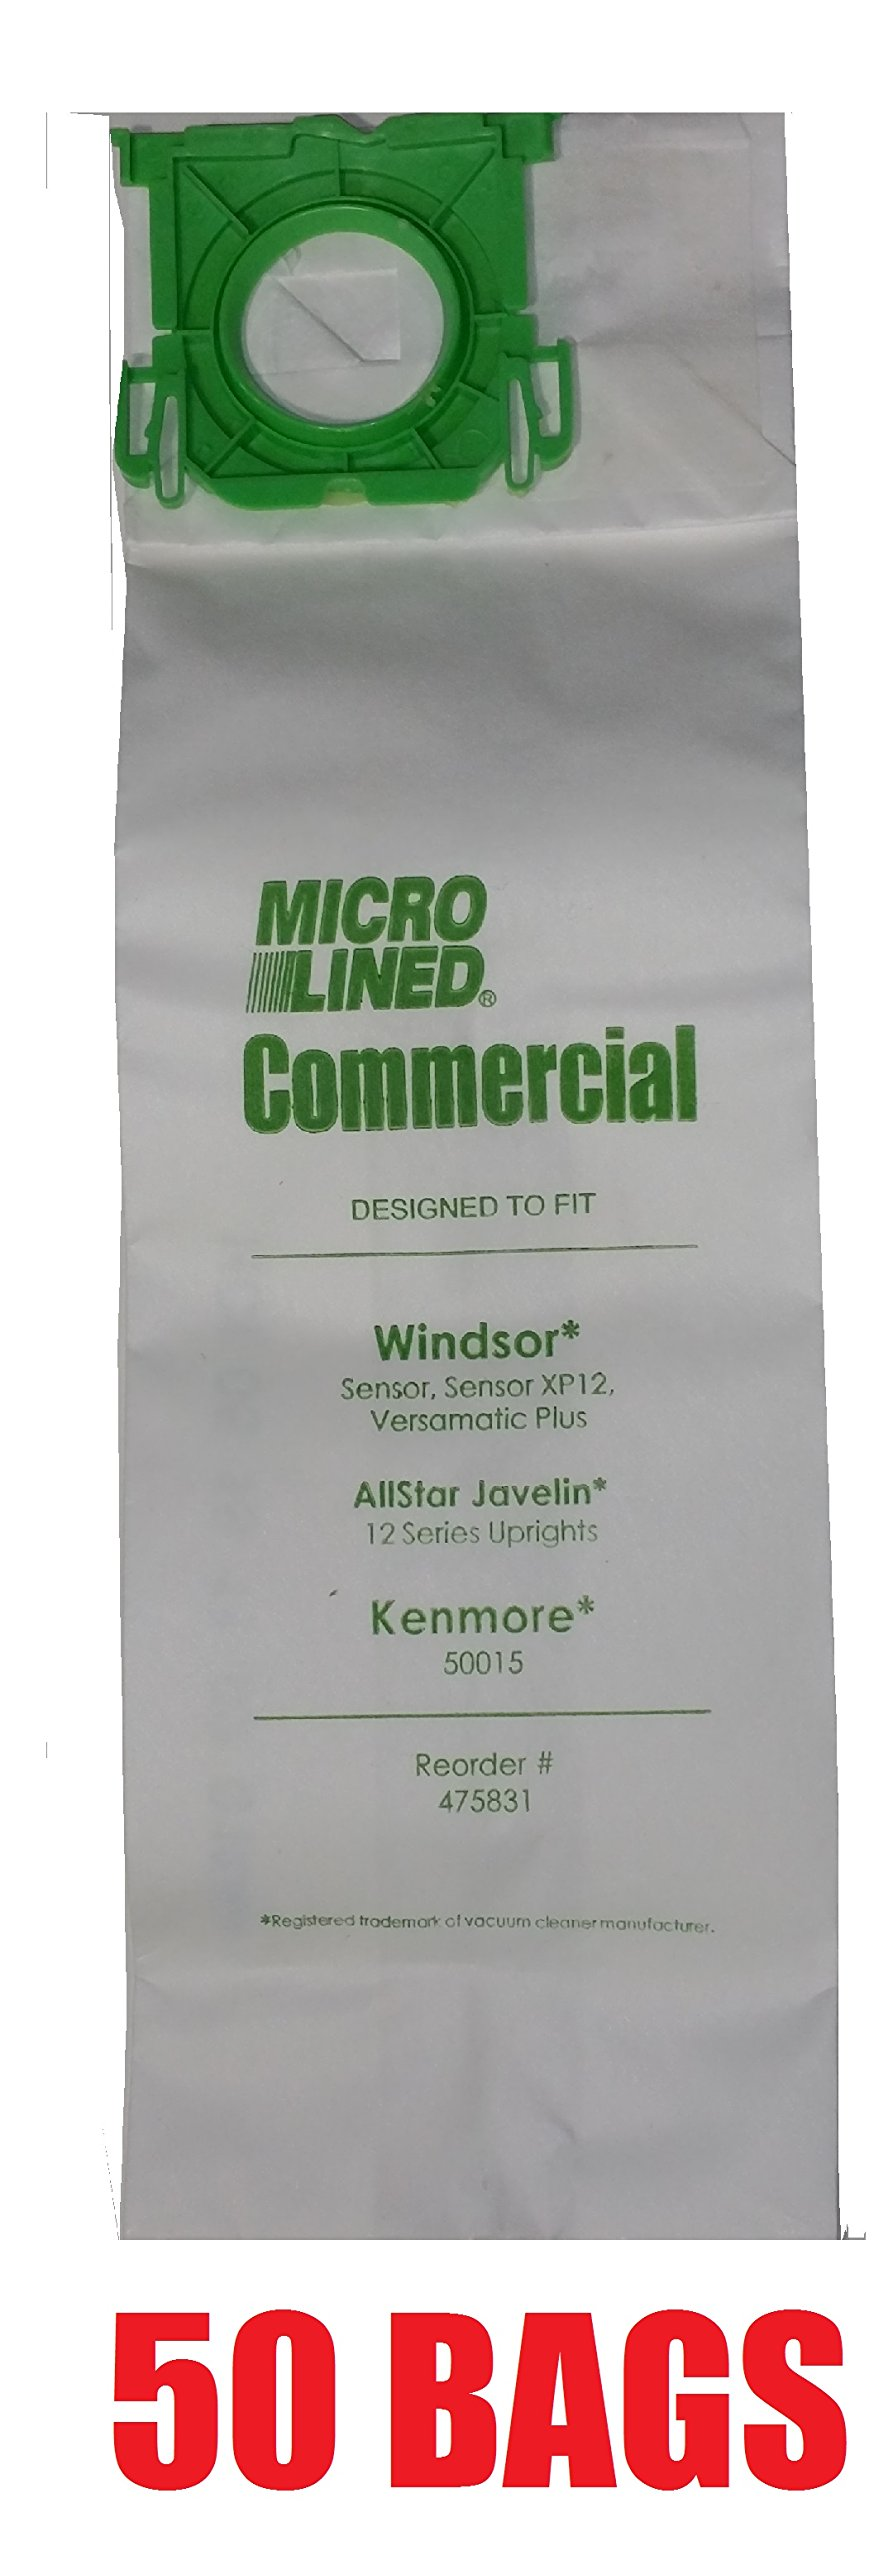 50 Sebo, Windsor Sensor Micro-Lined Commercial Upright Vacuum Bags, Fits 5093AM, 5300. 50 Pack.